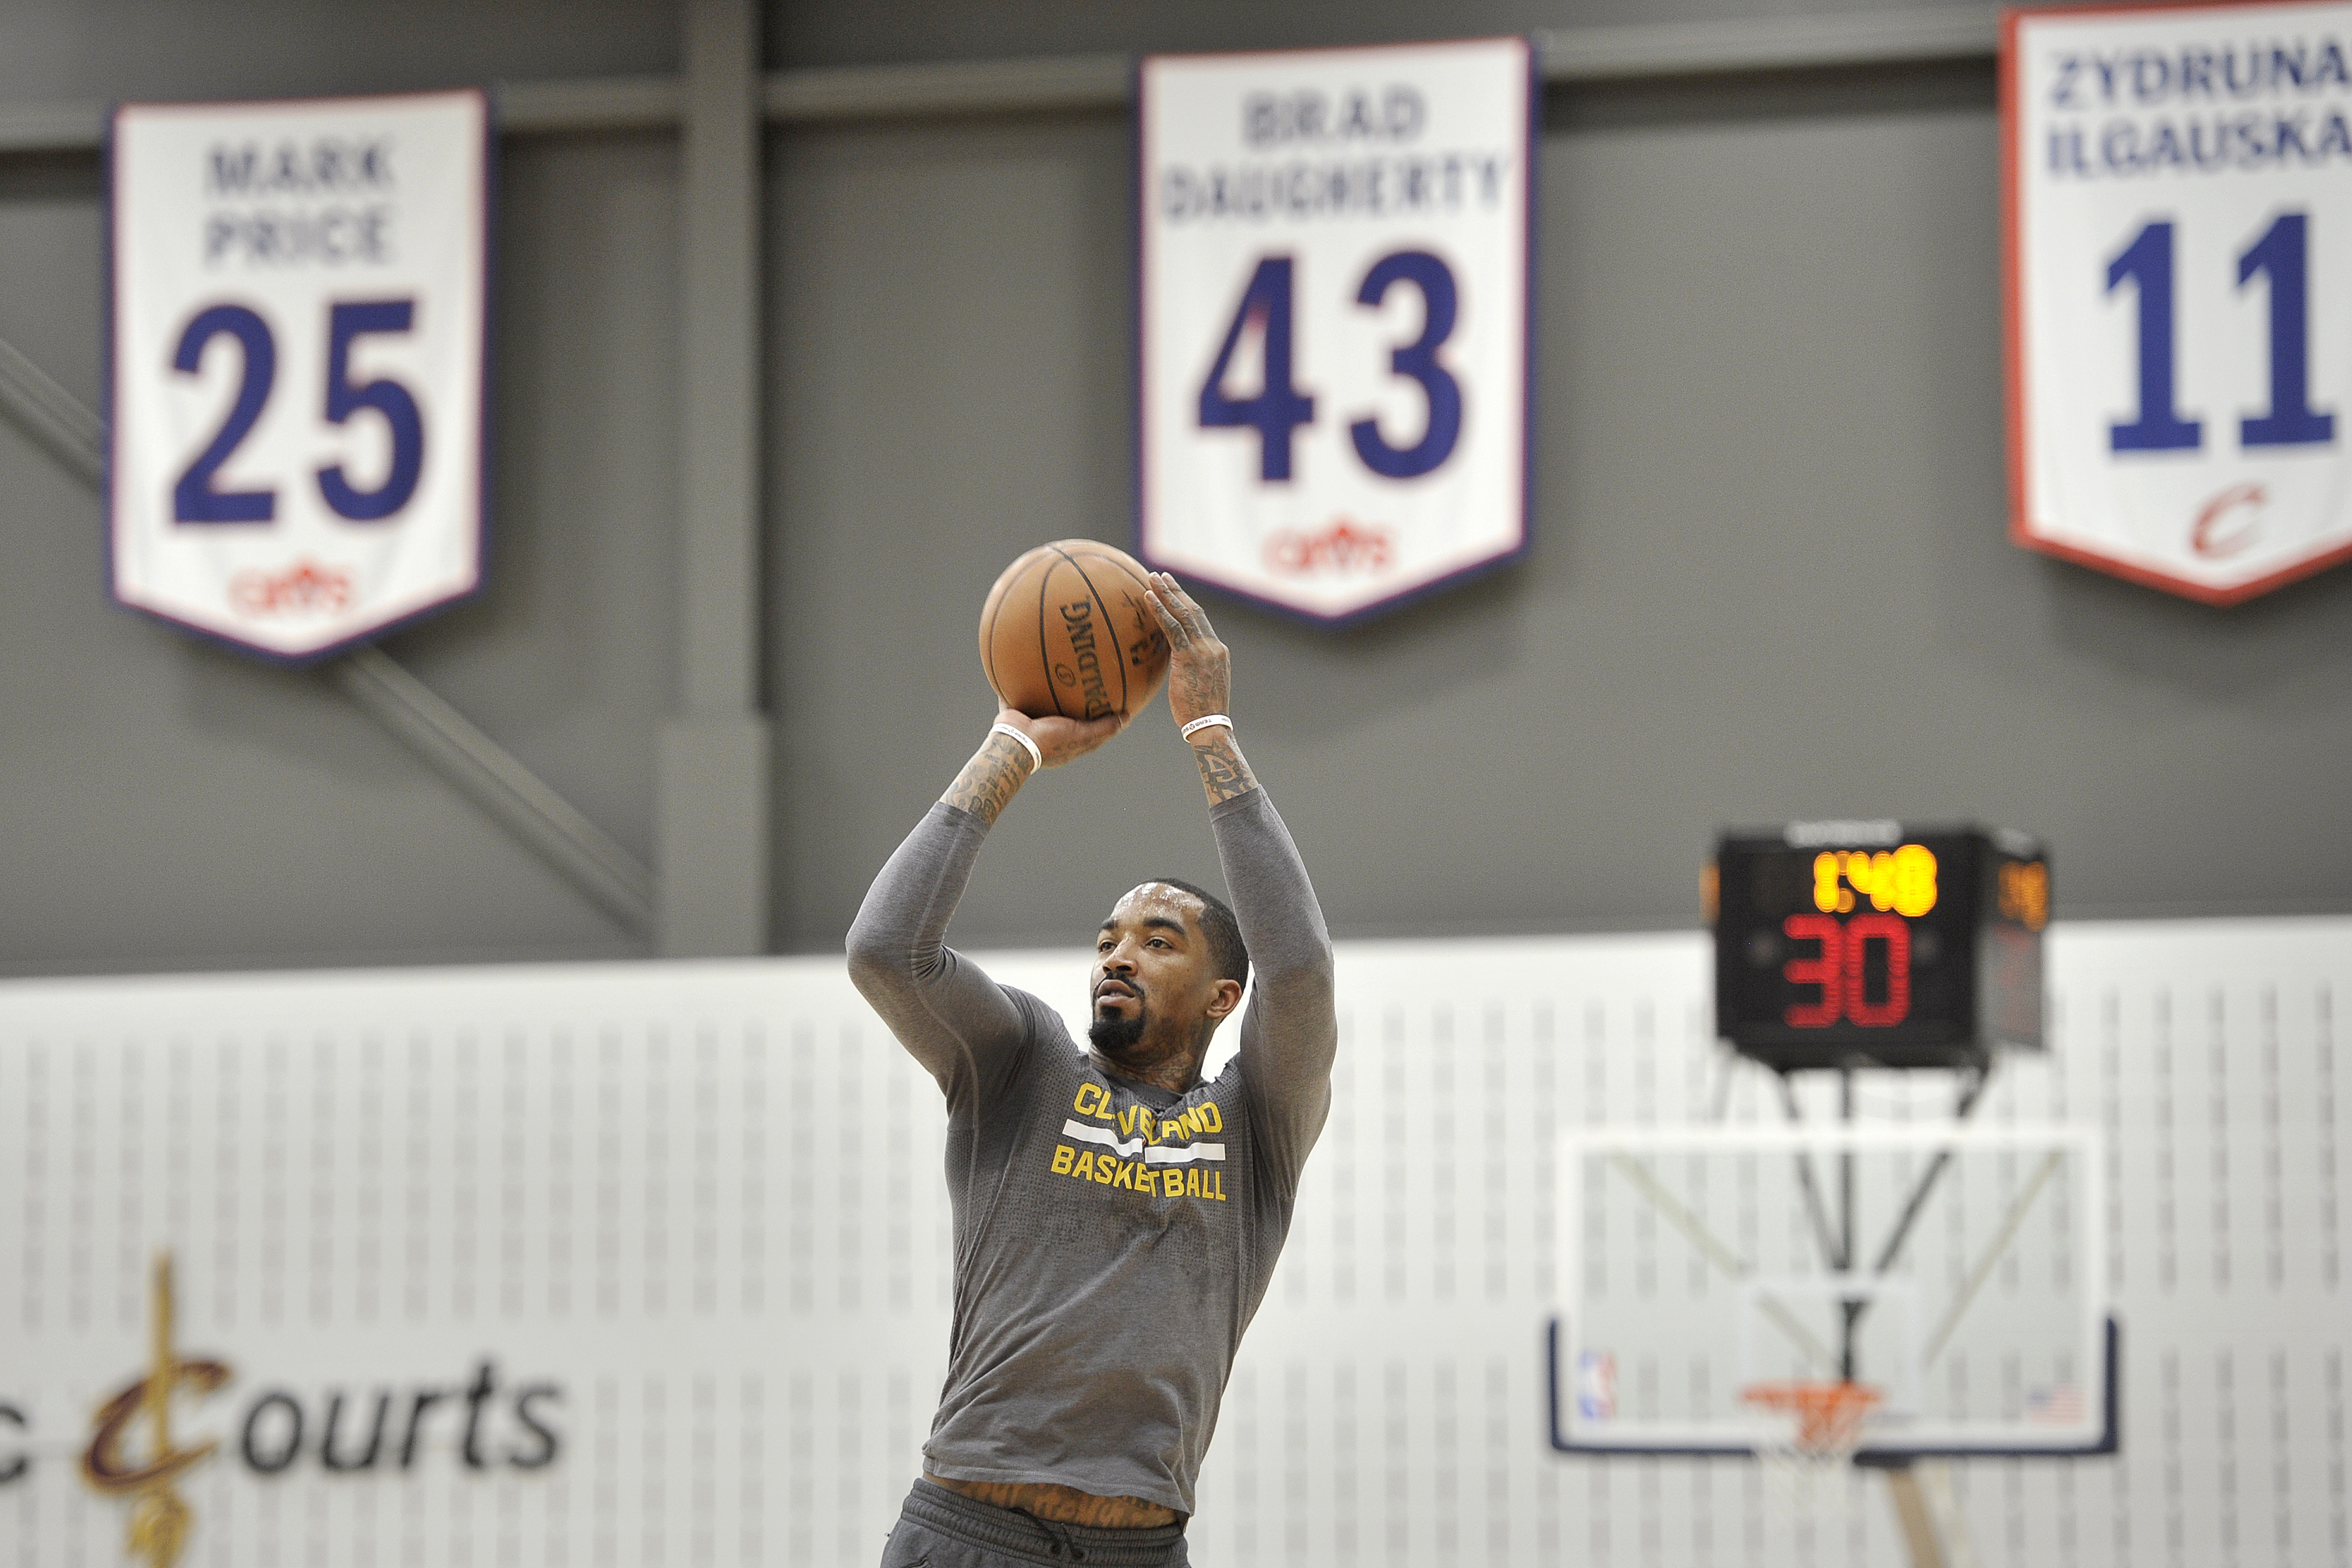 4f0c1559b92806 J.R. Smith #5 of the Cleveland Cavaliers shoots the ball during an  all-access practice at The Cleveland Clinic Courts on April 28, 2016 in  Independence, ...